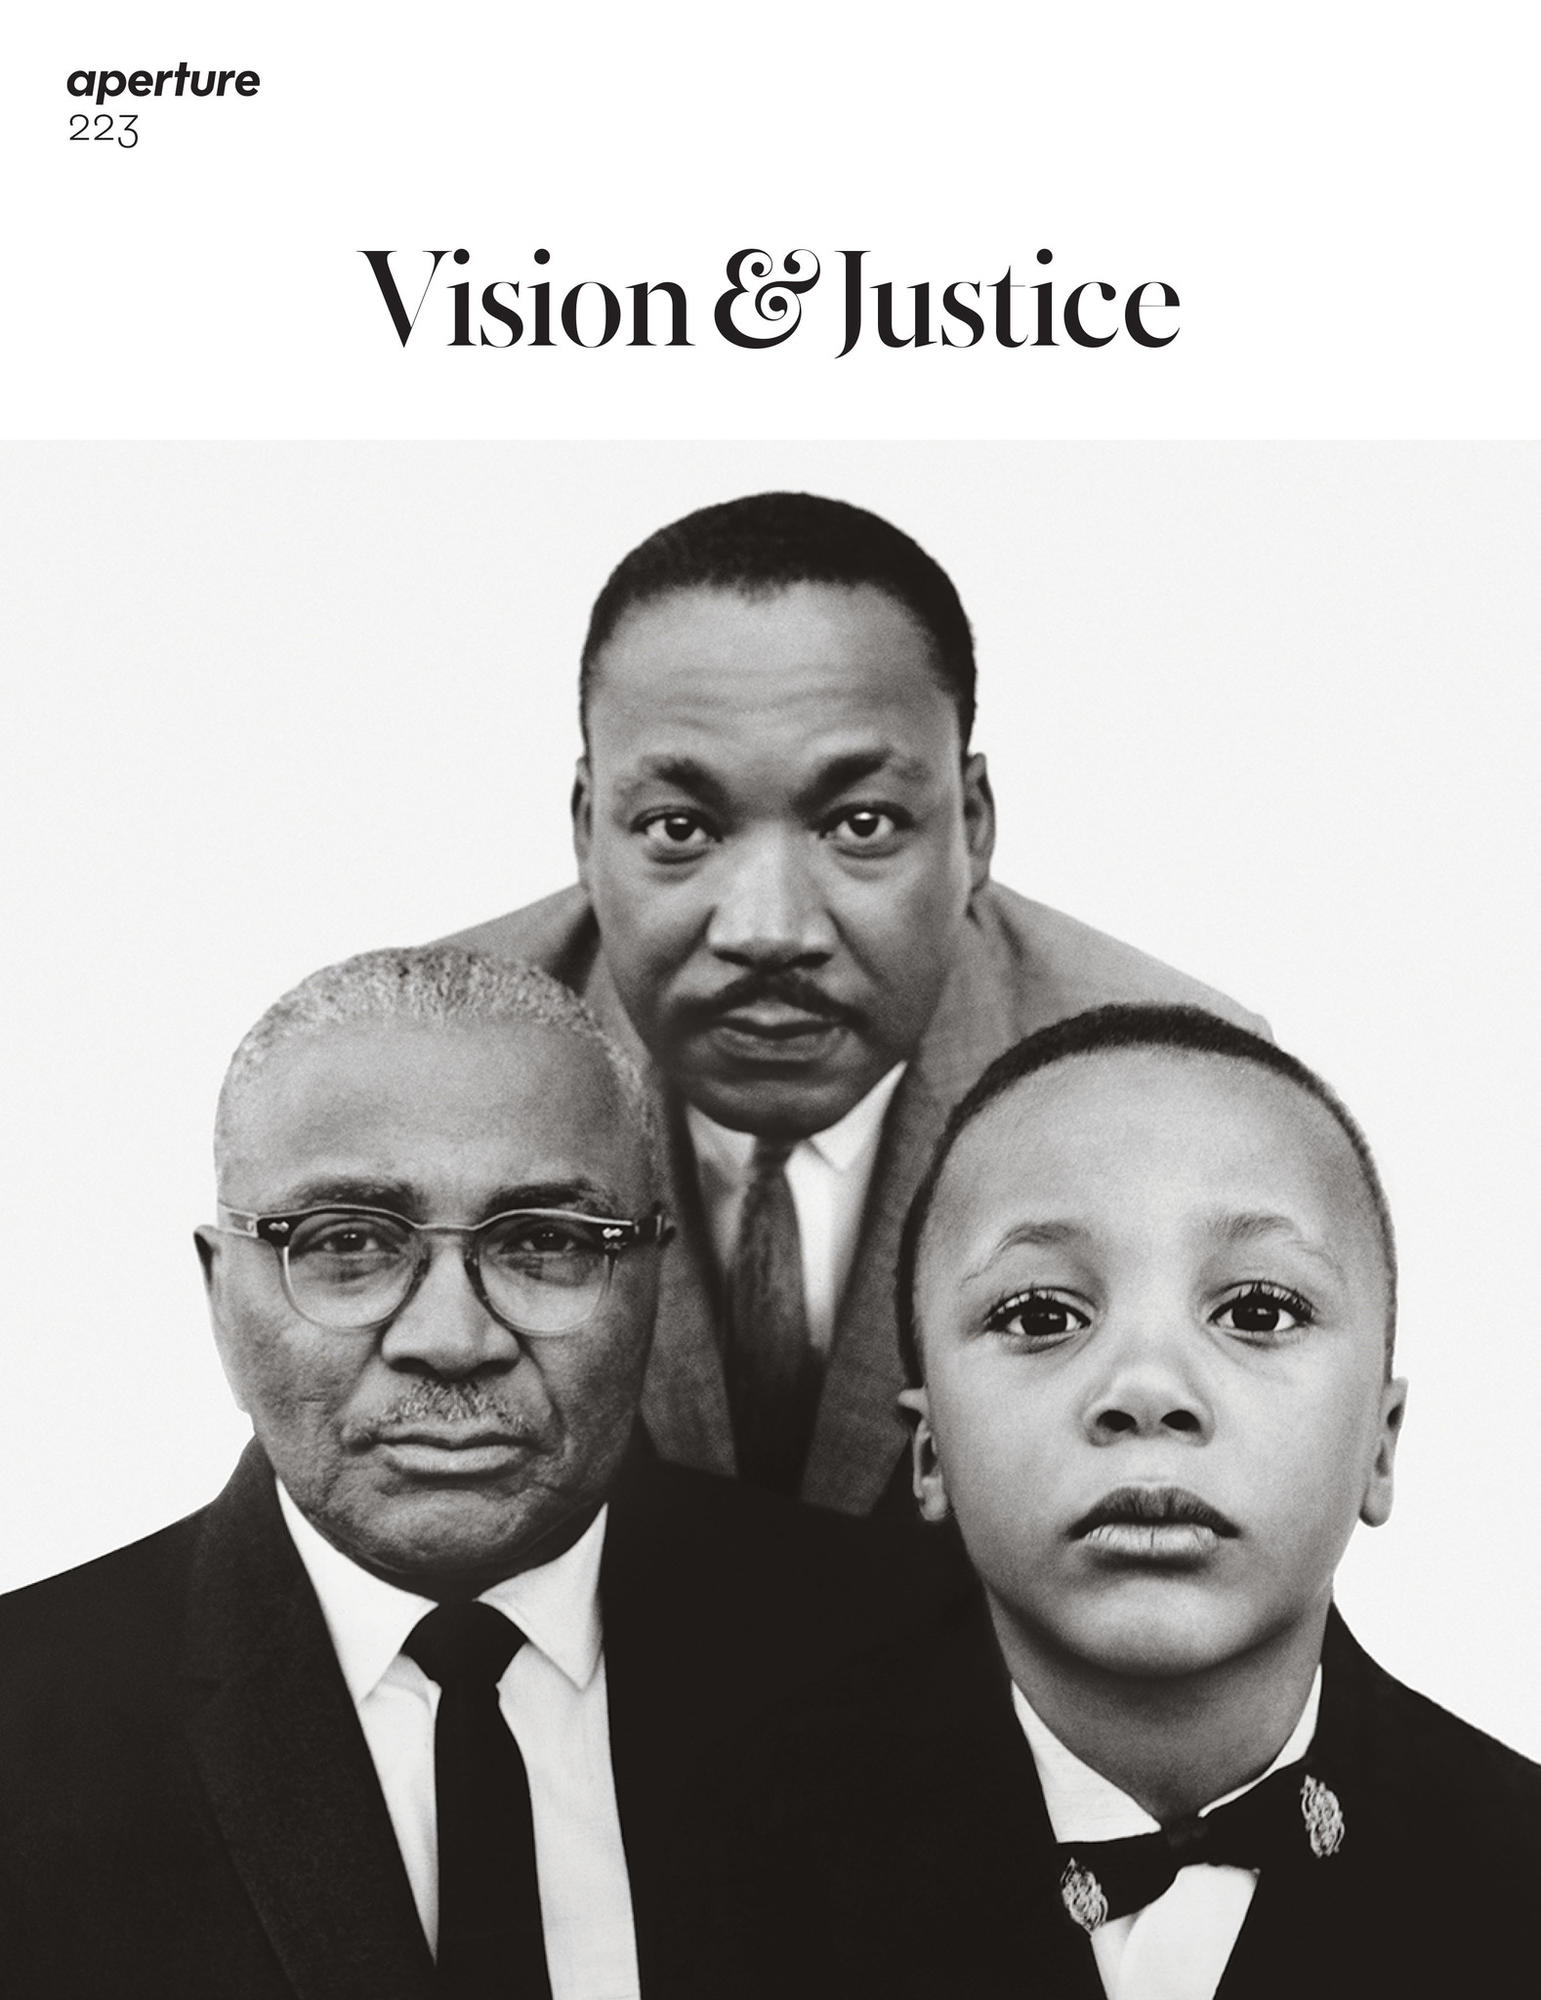 """One of two covers of Aperture Magazine\'s Summer 2016, """"Vision & Justice"""" issue with a photo by Richard Avedon. The Rev. Martin Luther King Jr. with his father, the Rev. Martin Luther King, and his son, Martin Luther King III, Atlanta, 1963."""